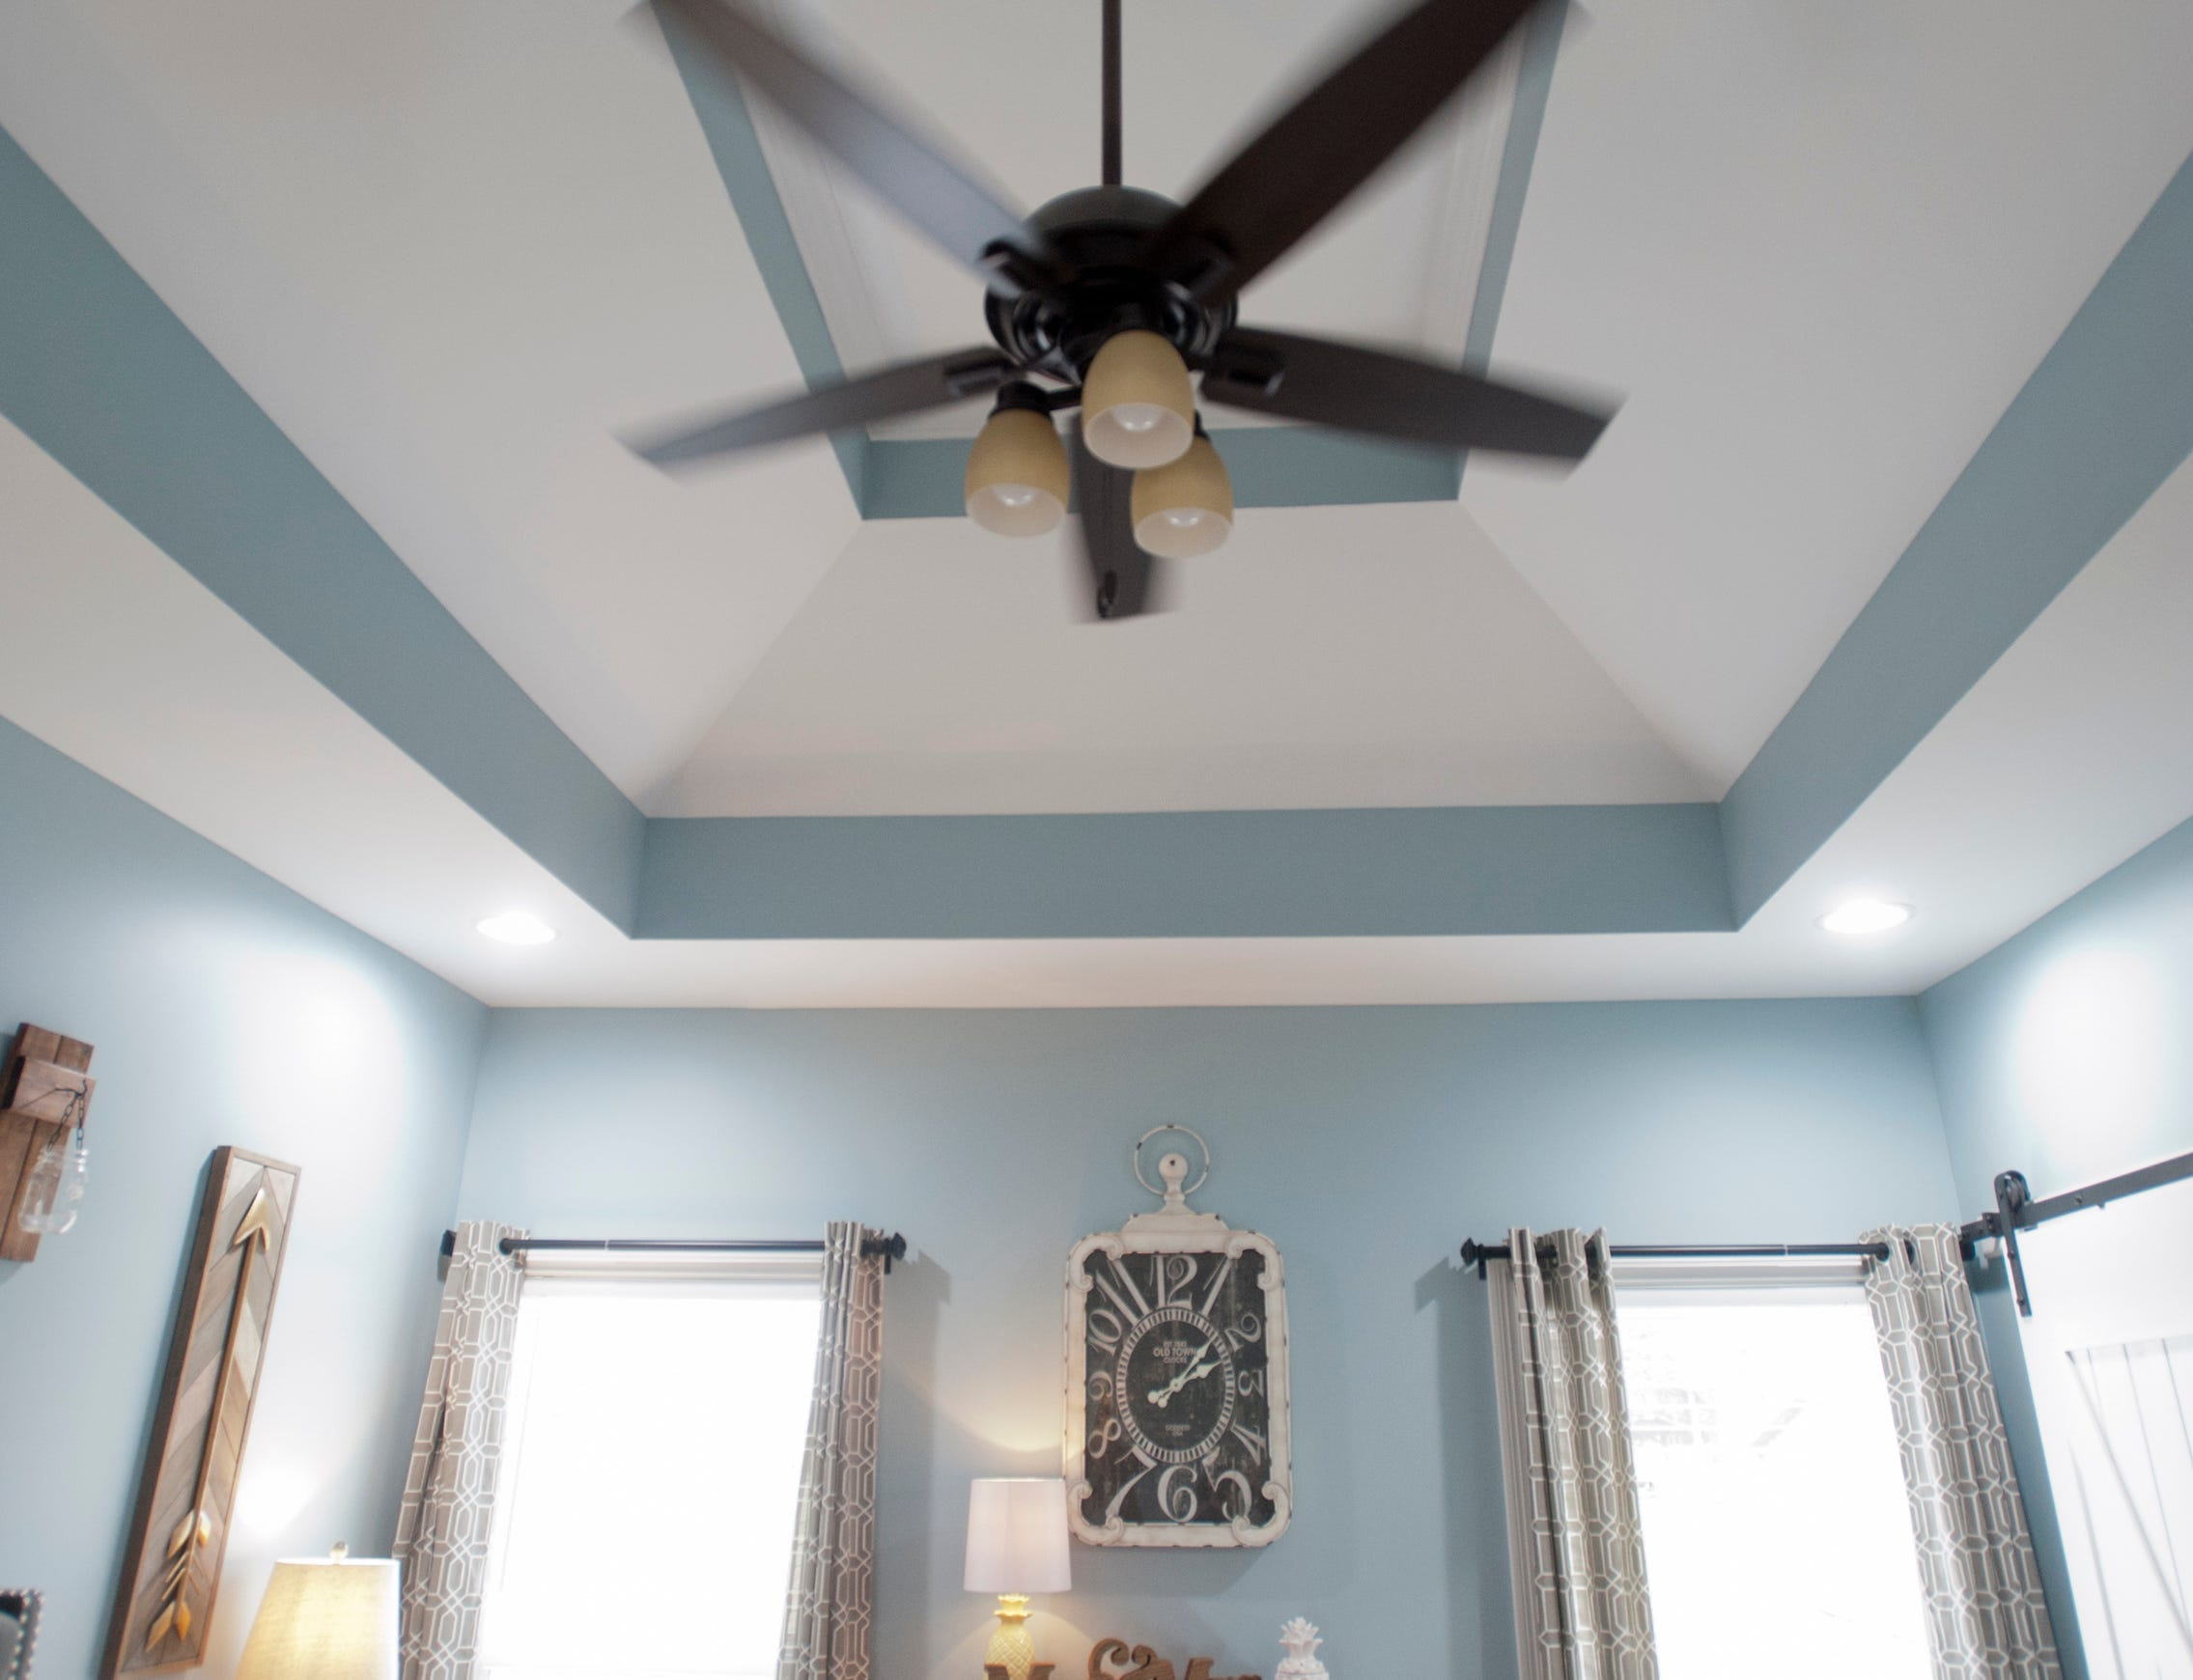 The 10-foot-high master bedroom double-tray ceiling.